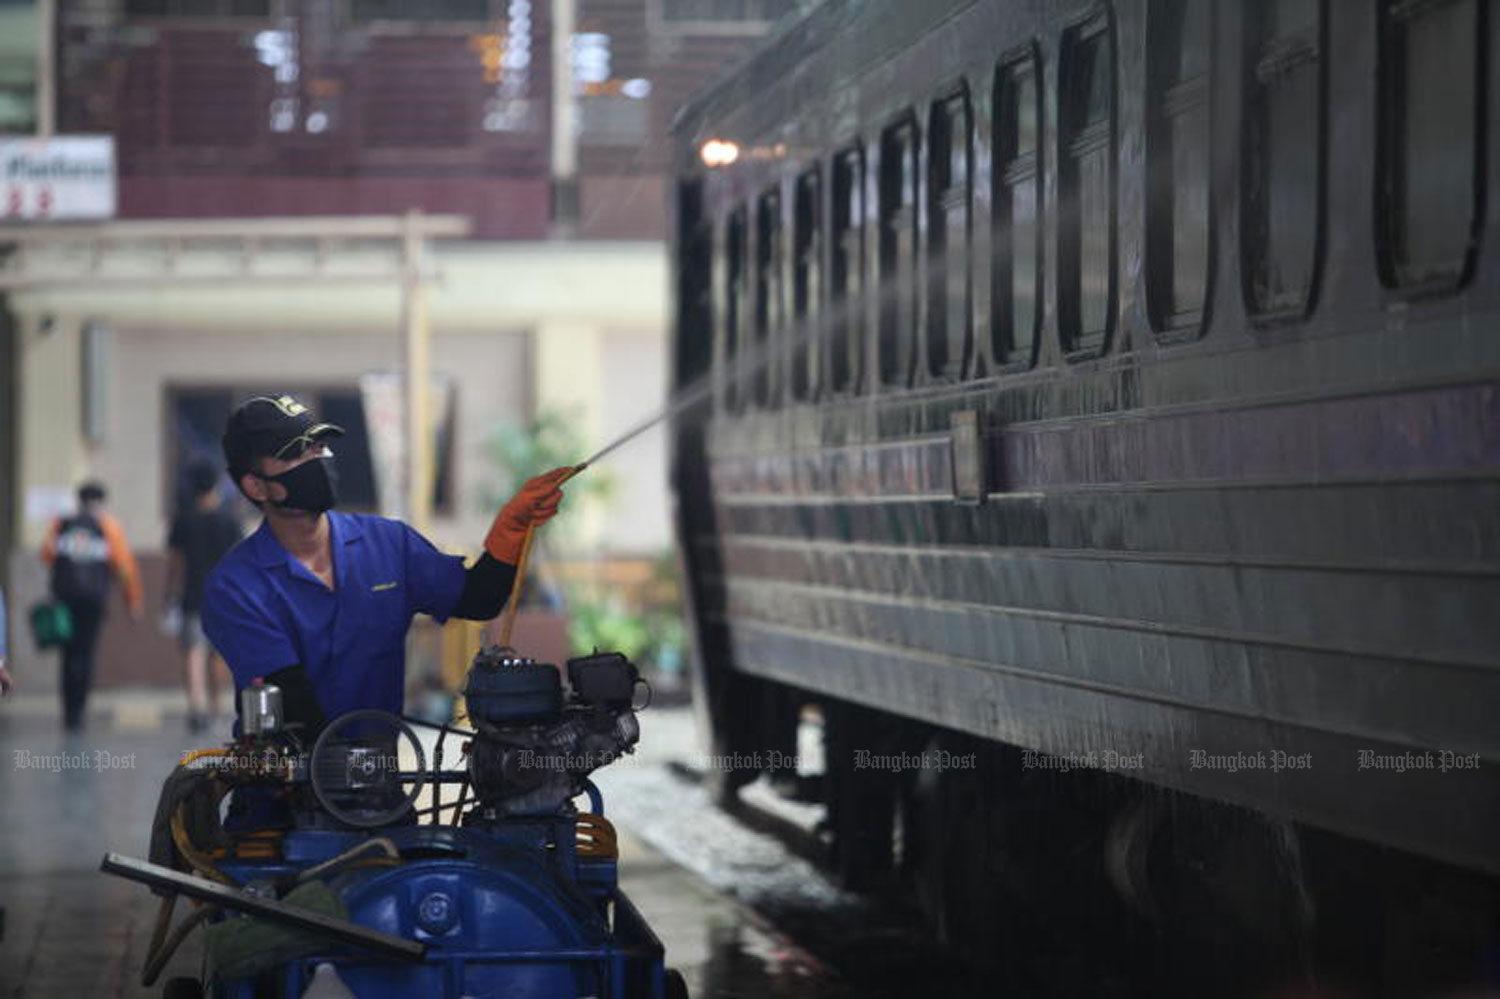 A man cleans a train carriage at Hua Lamphong railway station on Friday. Songkran travellers are returning from the provinces to Bangkok after the long holiday officially ended on Thursday. (Photo by Apichart Jinakul)